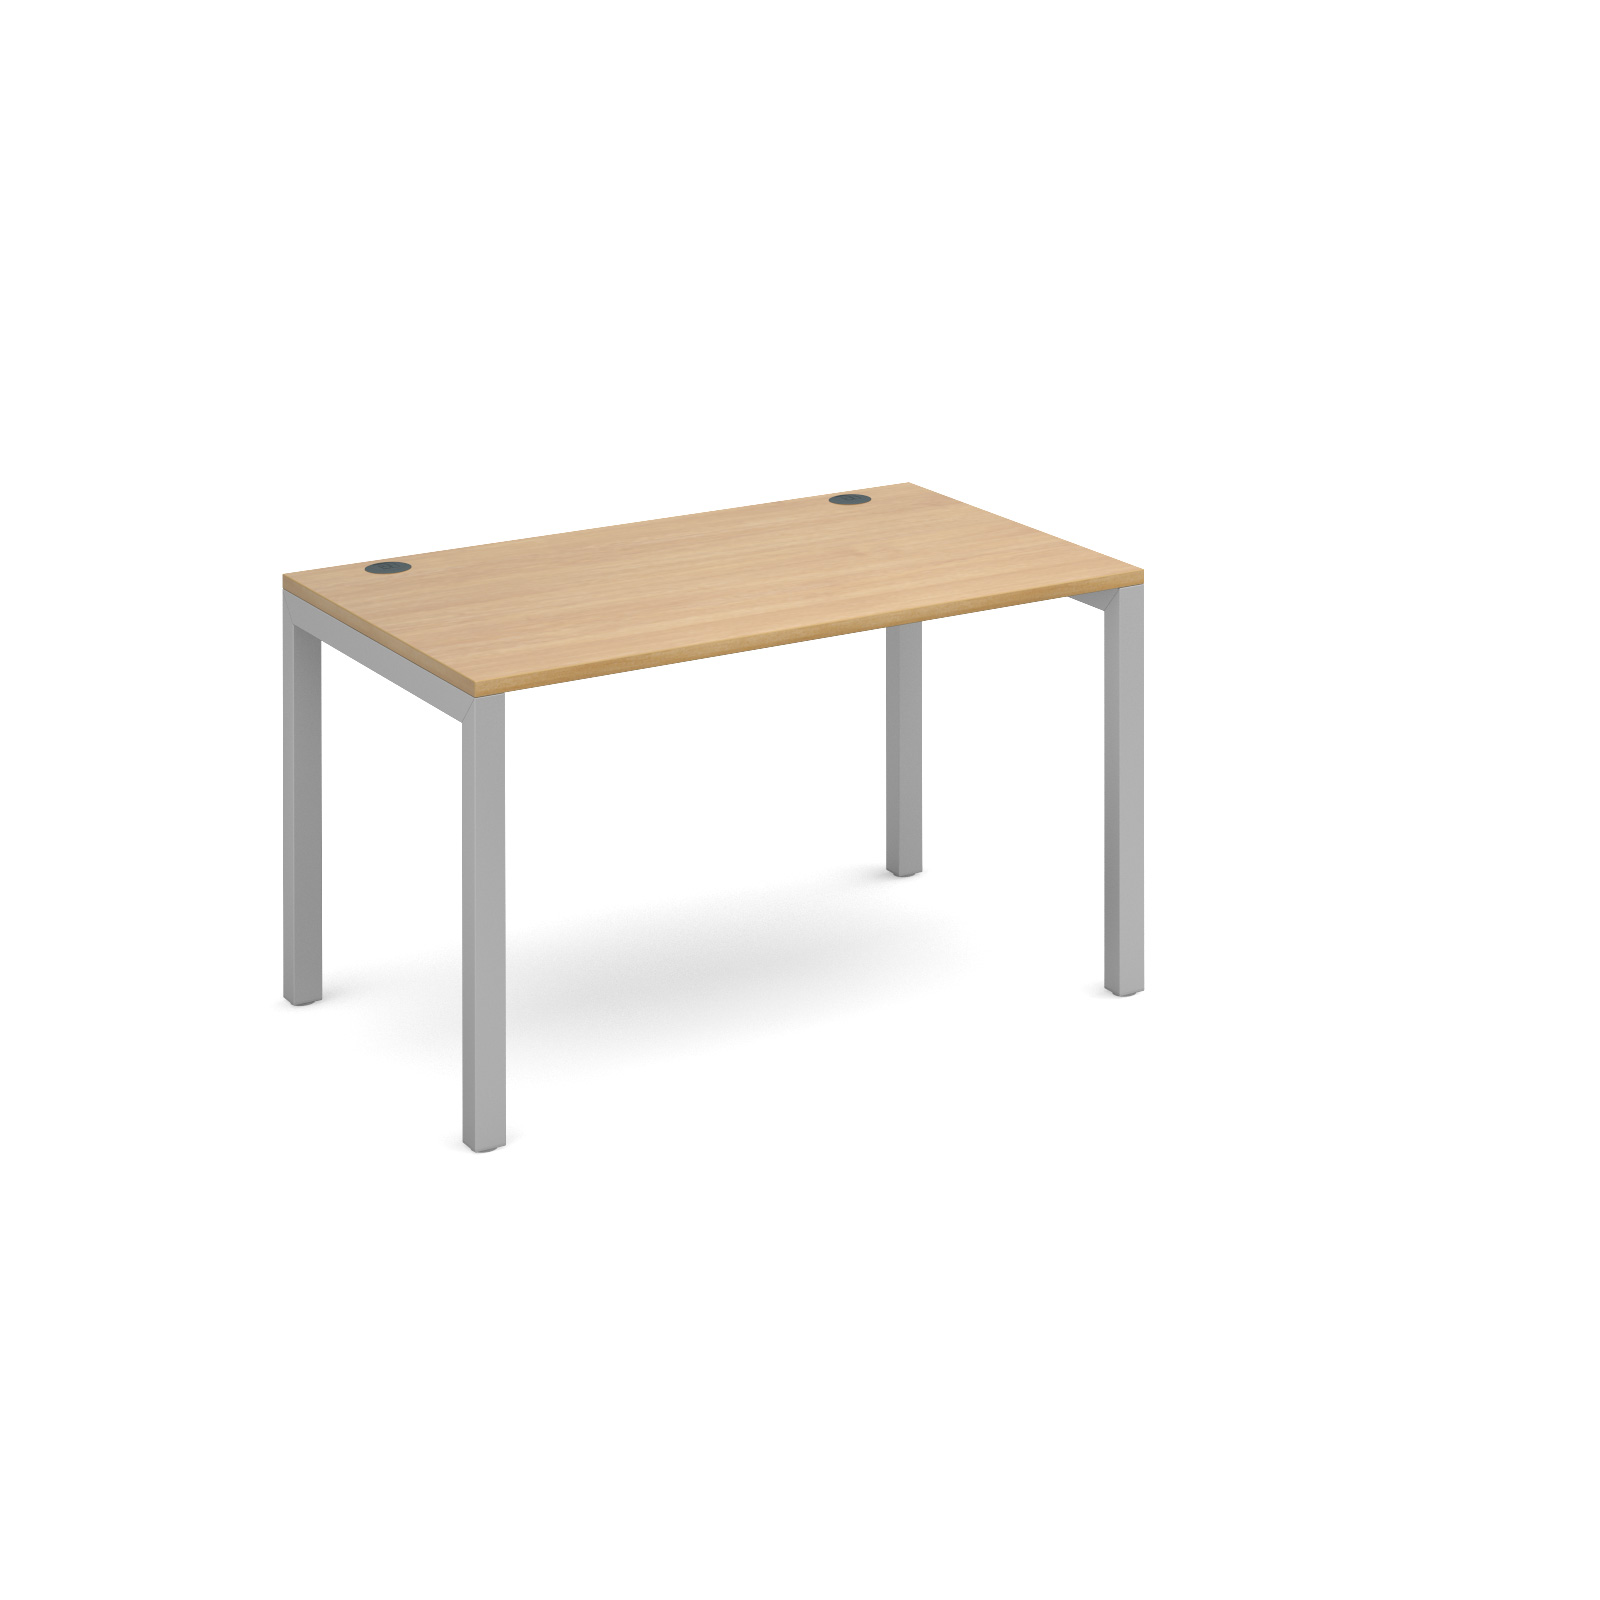 Dams Connex Oak Single Bench Desk